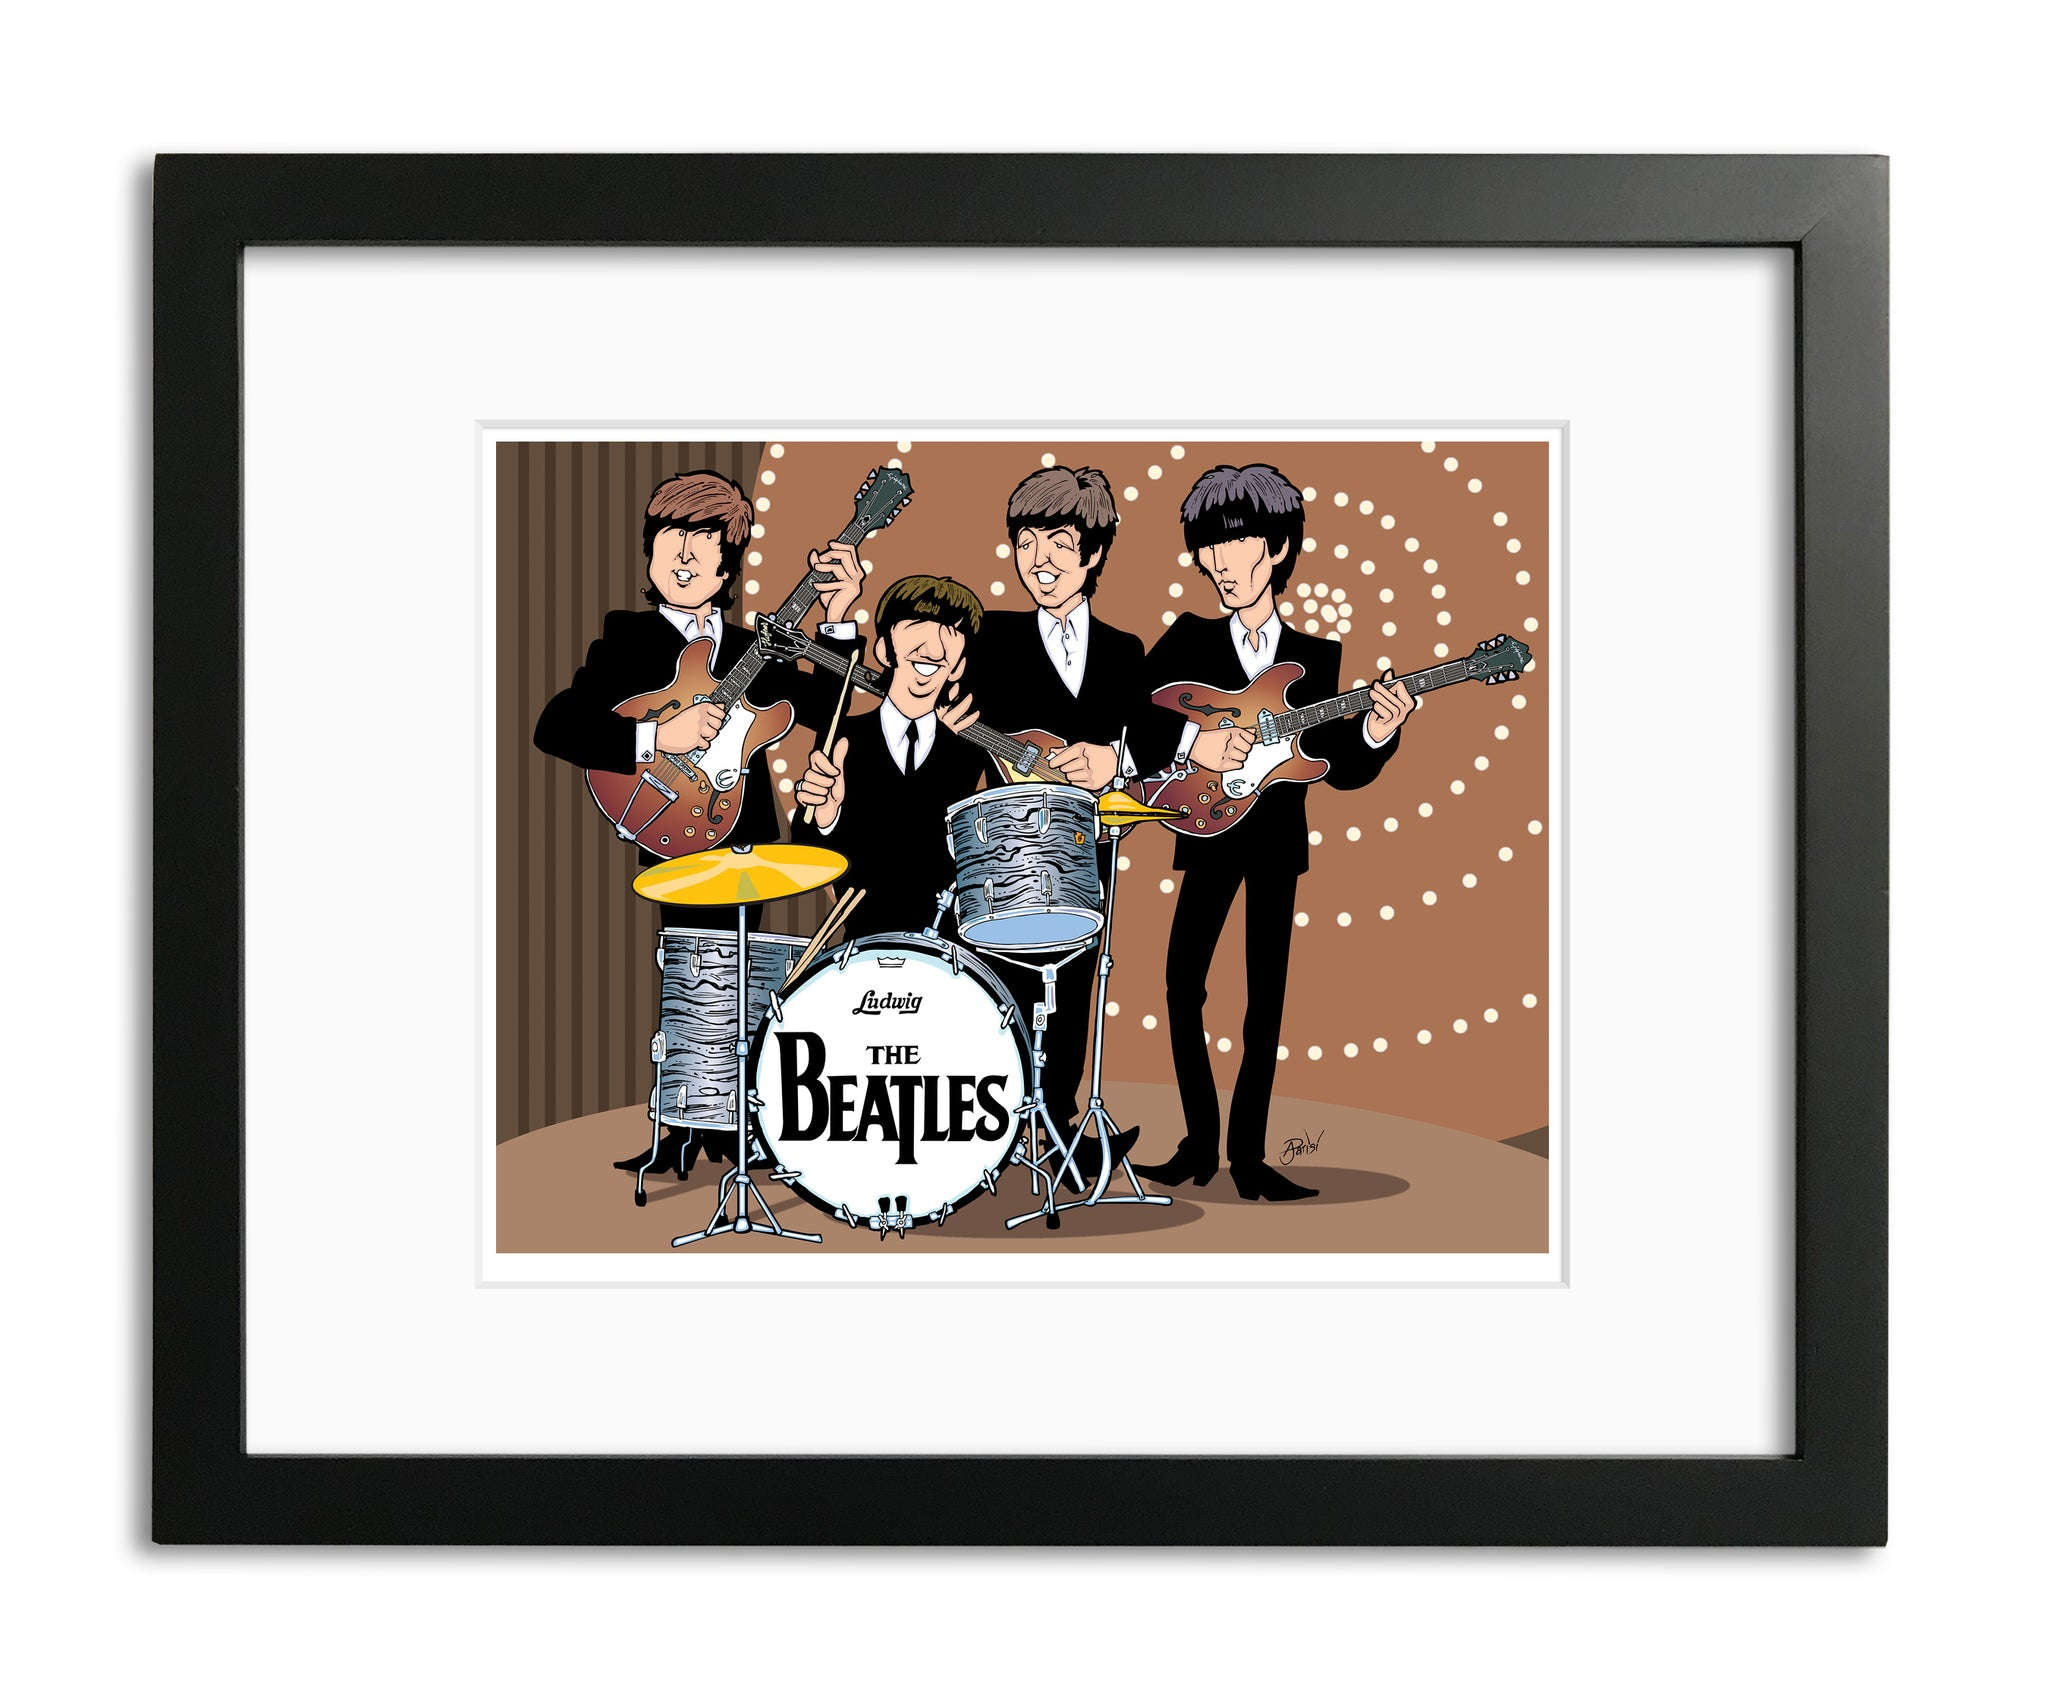 Beatles Top of The Pops Performance by Anthony Parisi, Limited Edition Print